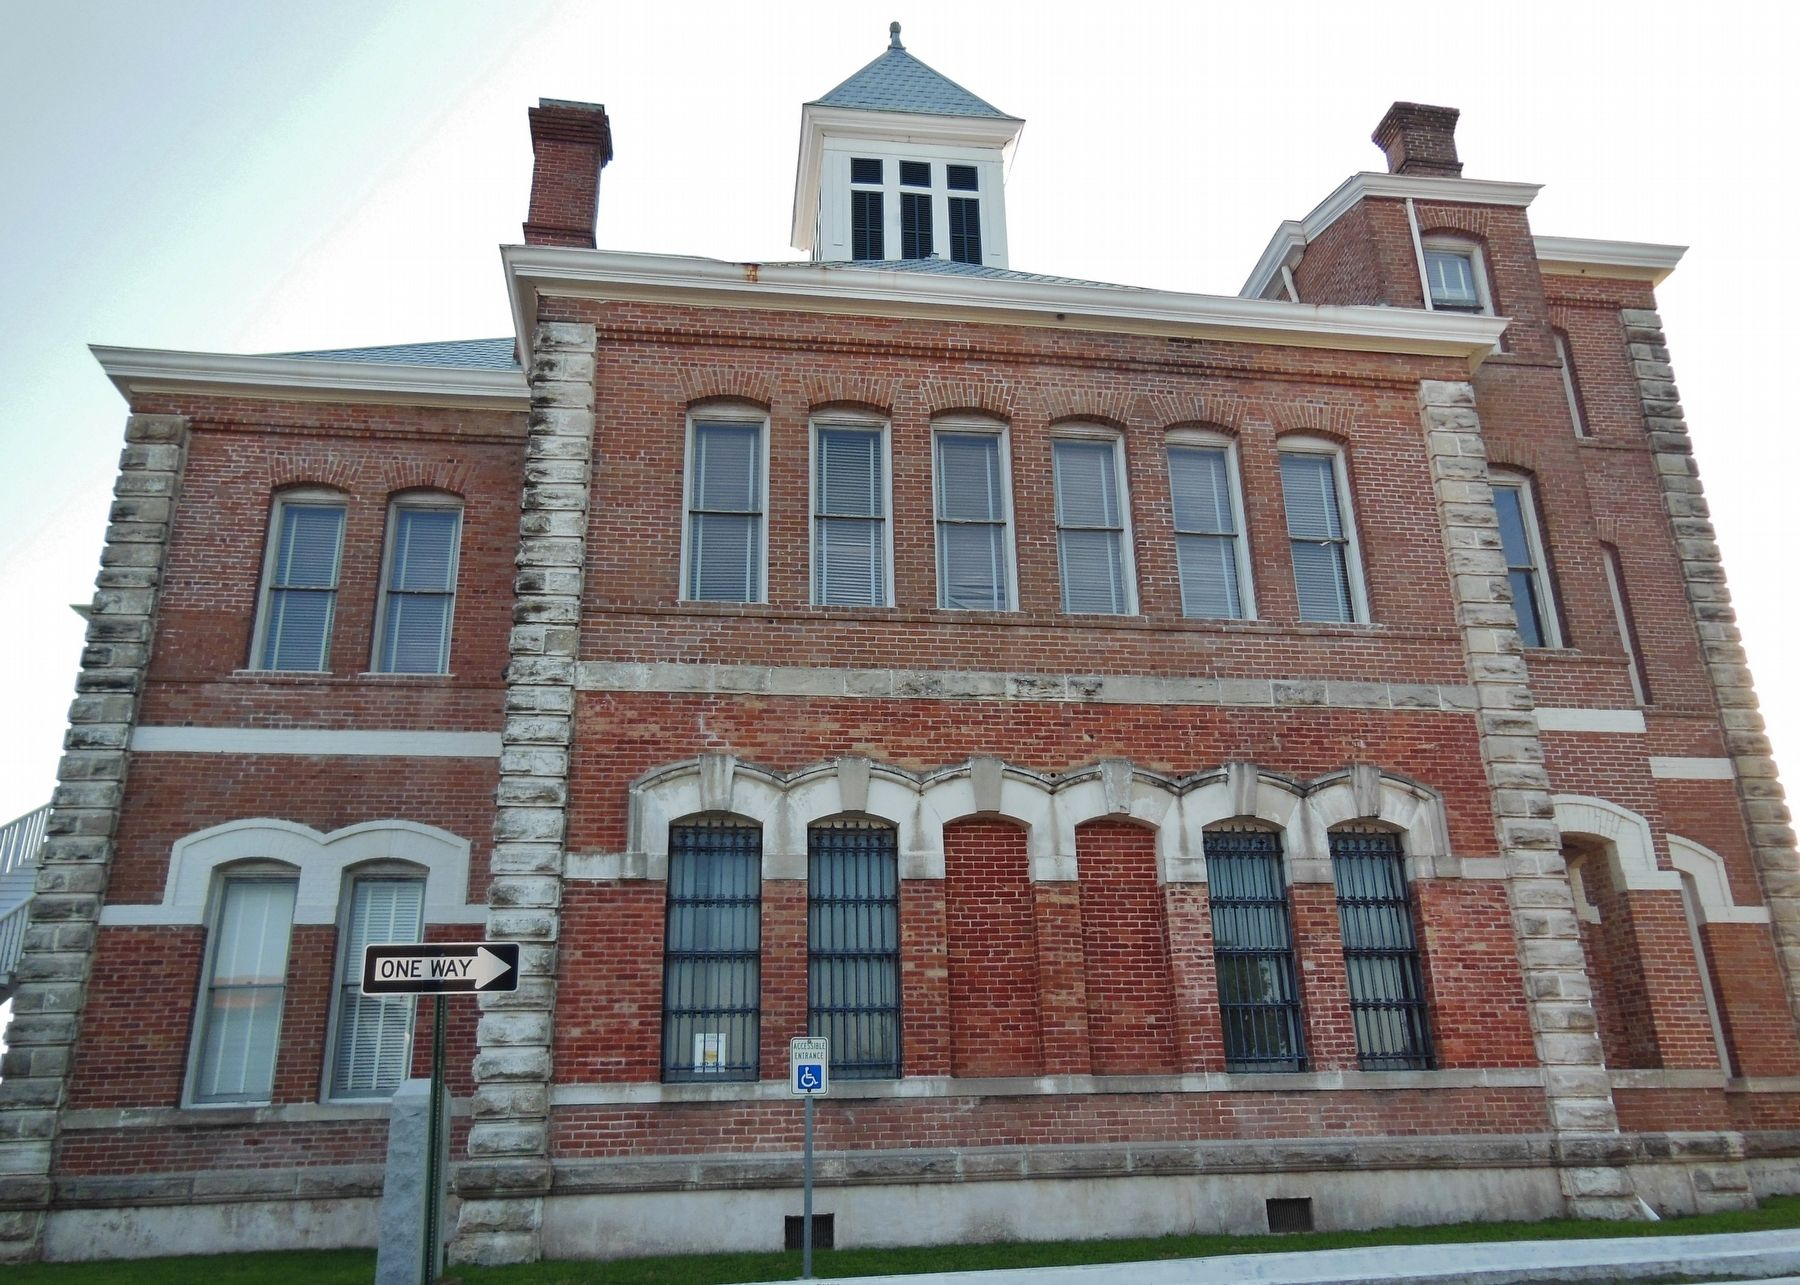 Grimes County Courthouse (<i>east side</i>) image. Click for full size.